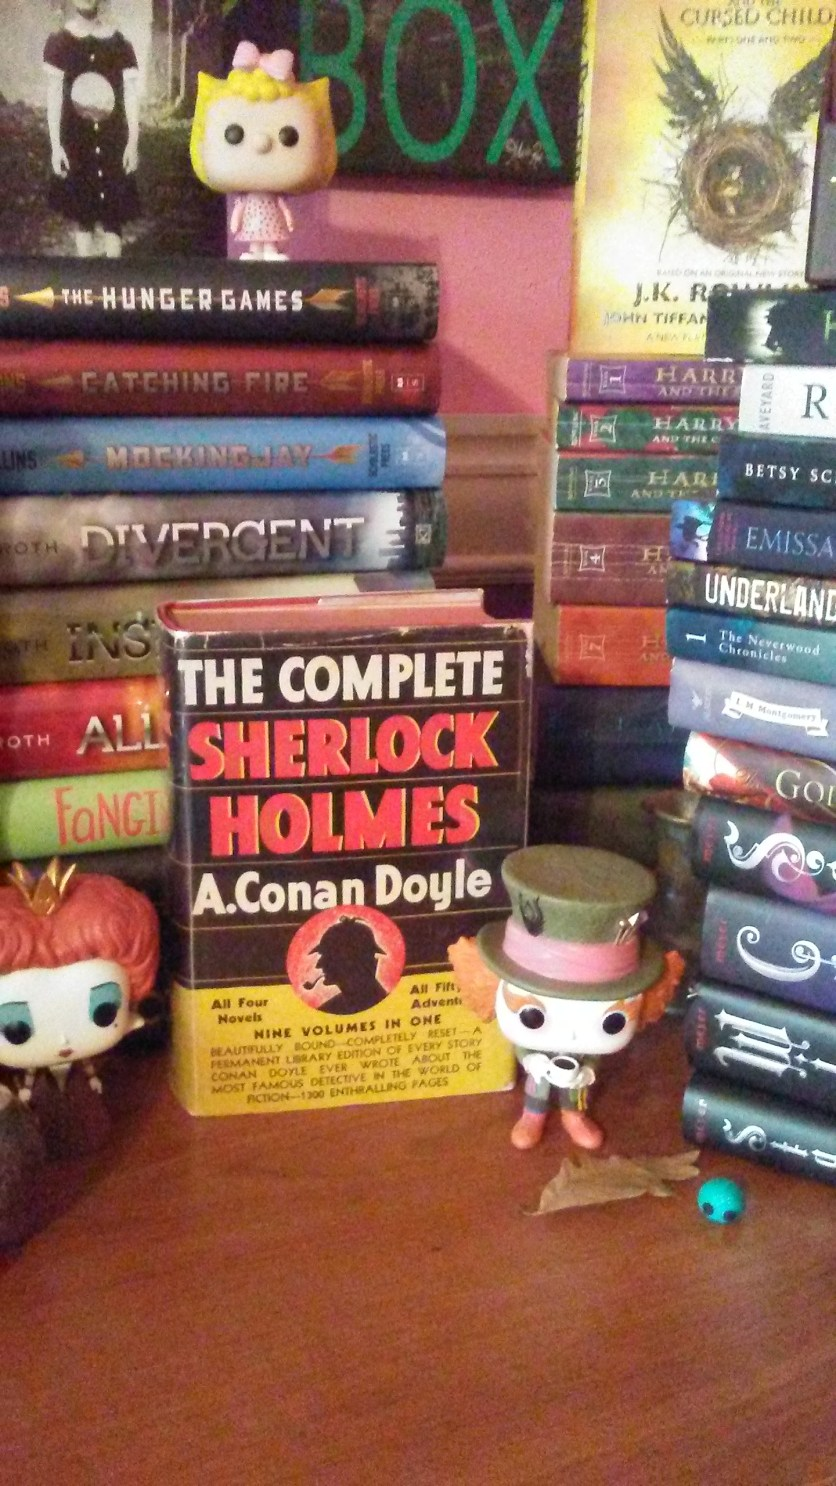 Here is the Mad Hatter and Queen of Hearts standing in front of a behemoth Sherlock Holmes collection that could literally murder my face...